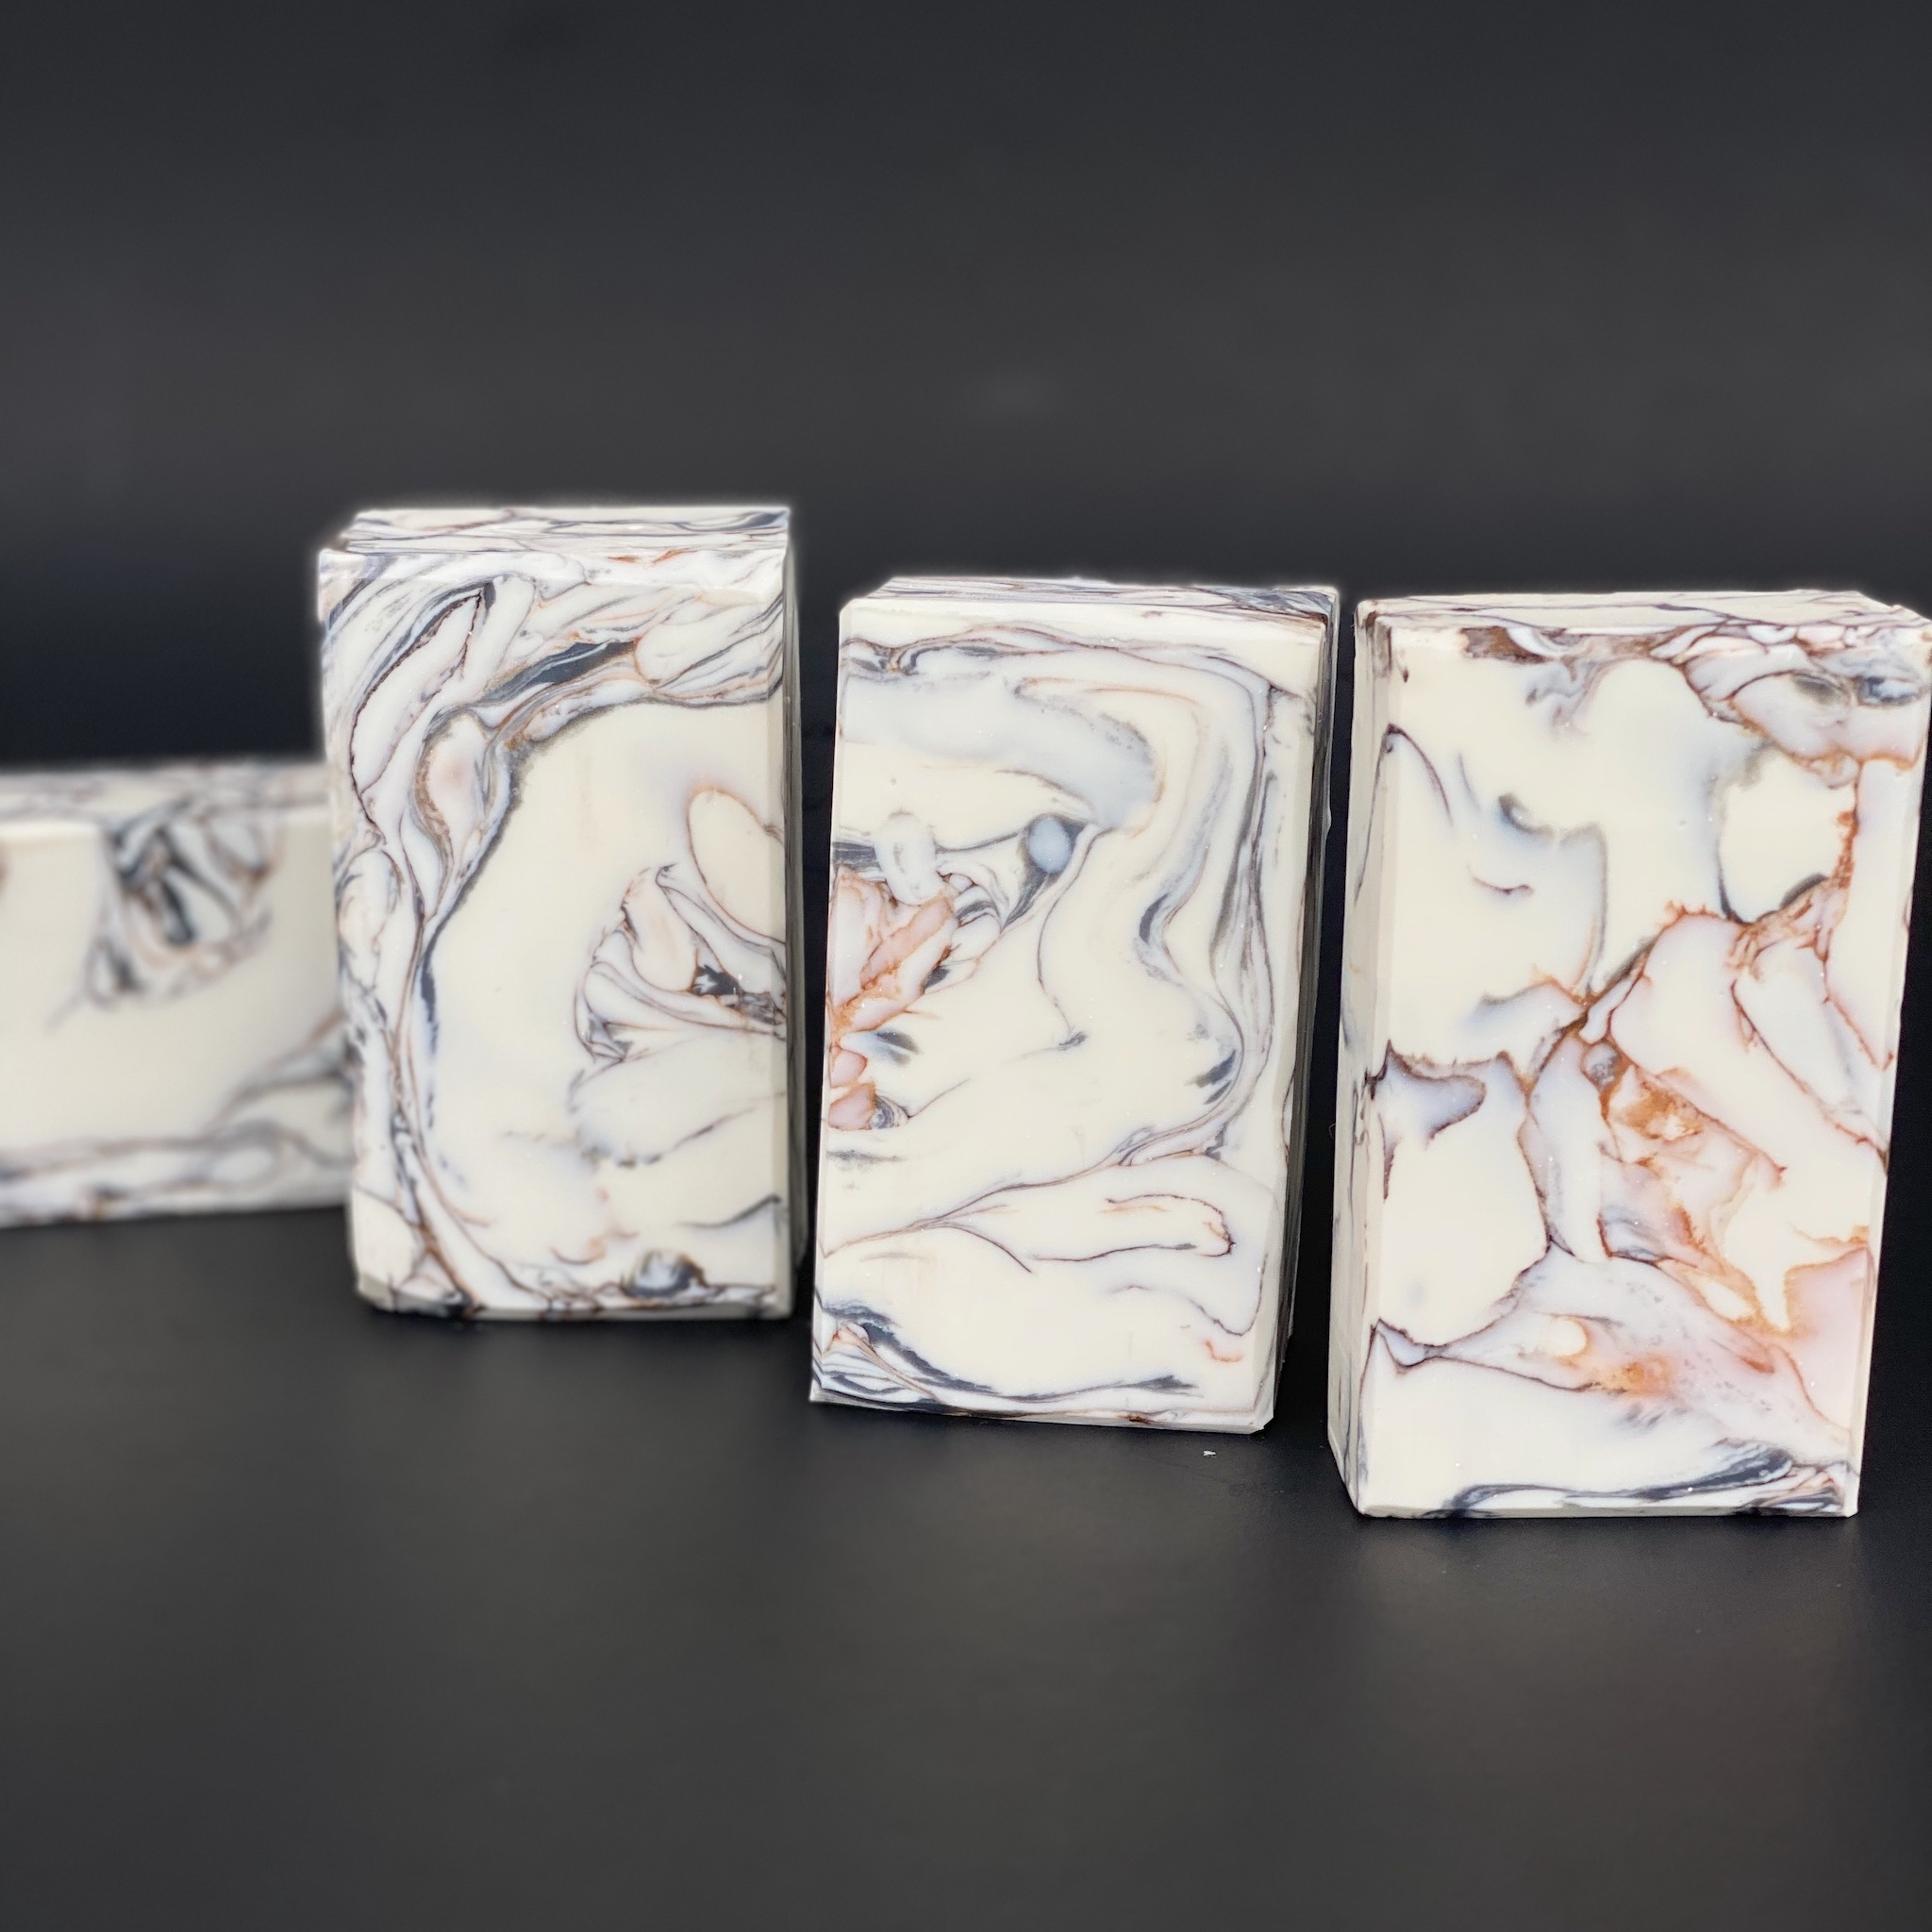 my marble soap experiment